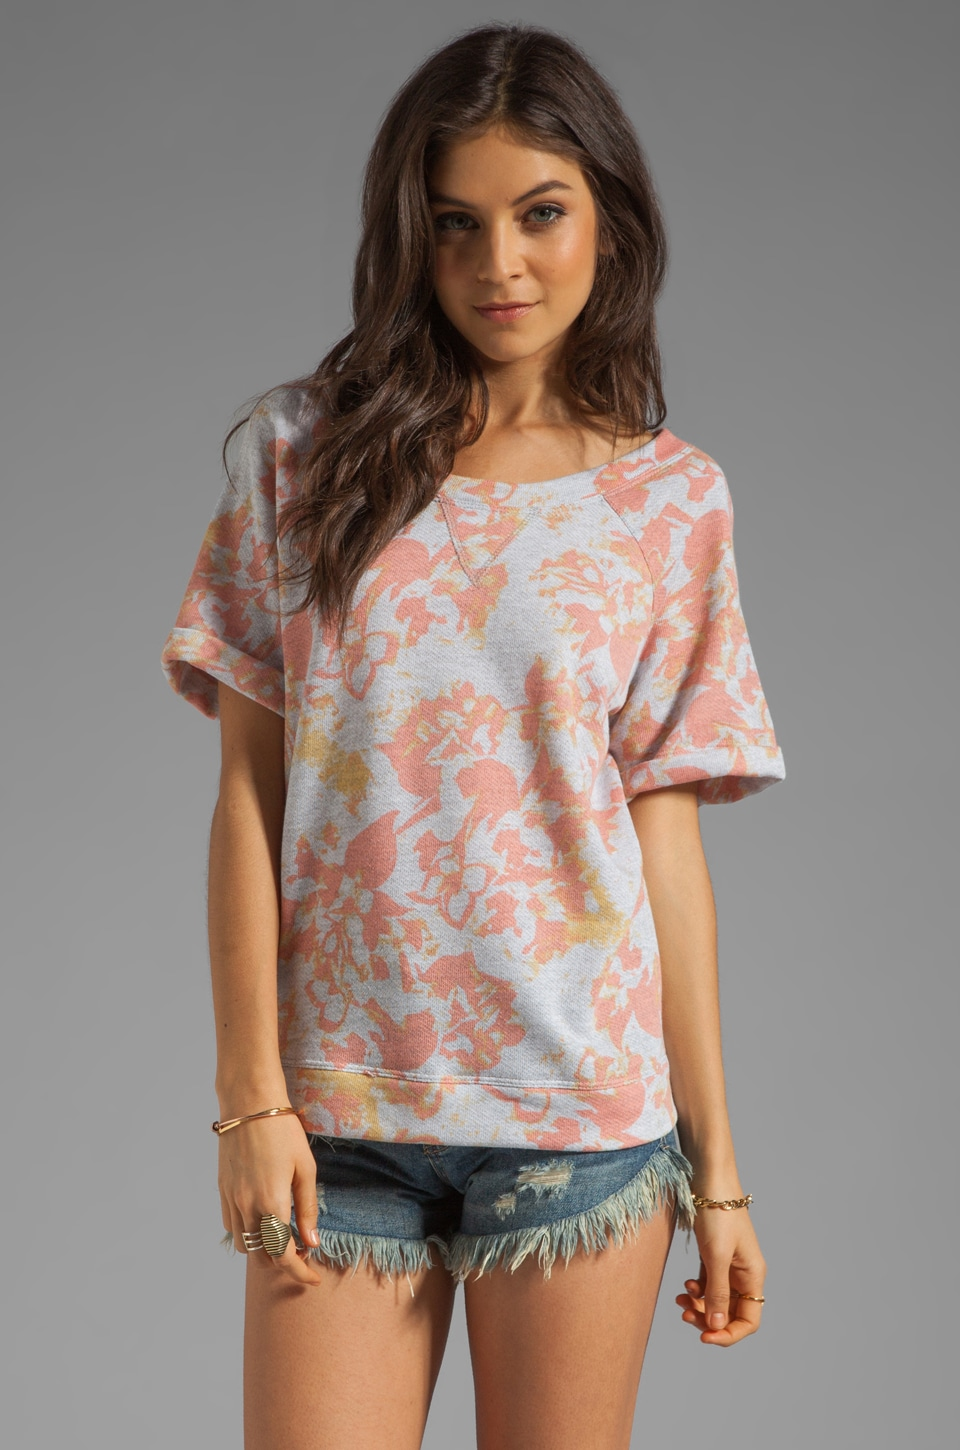 SAM&LAVI Violet Short Sleeve Top in Flora Irish Terry